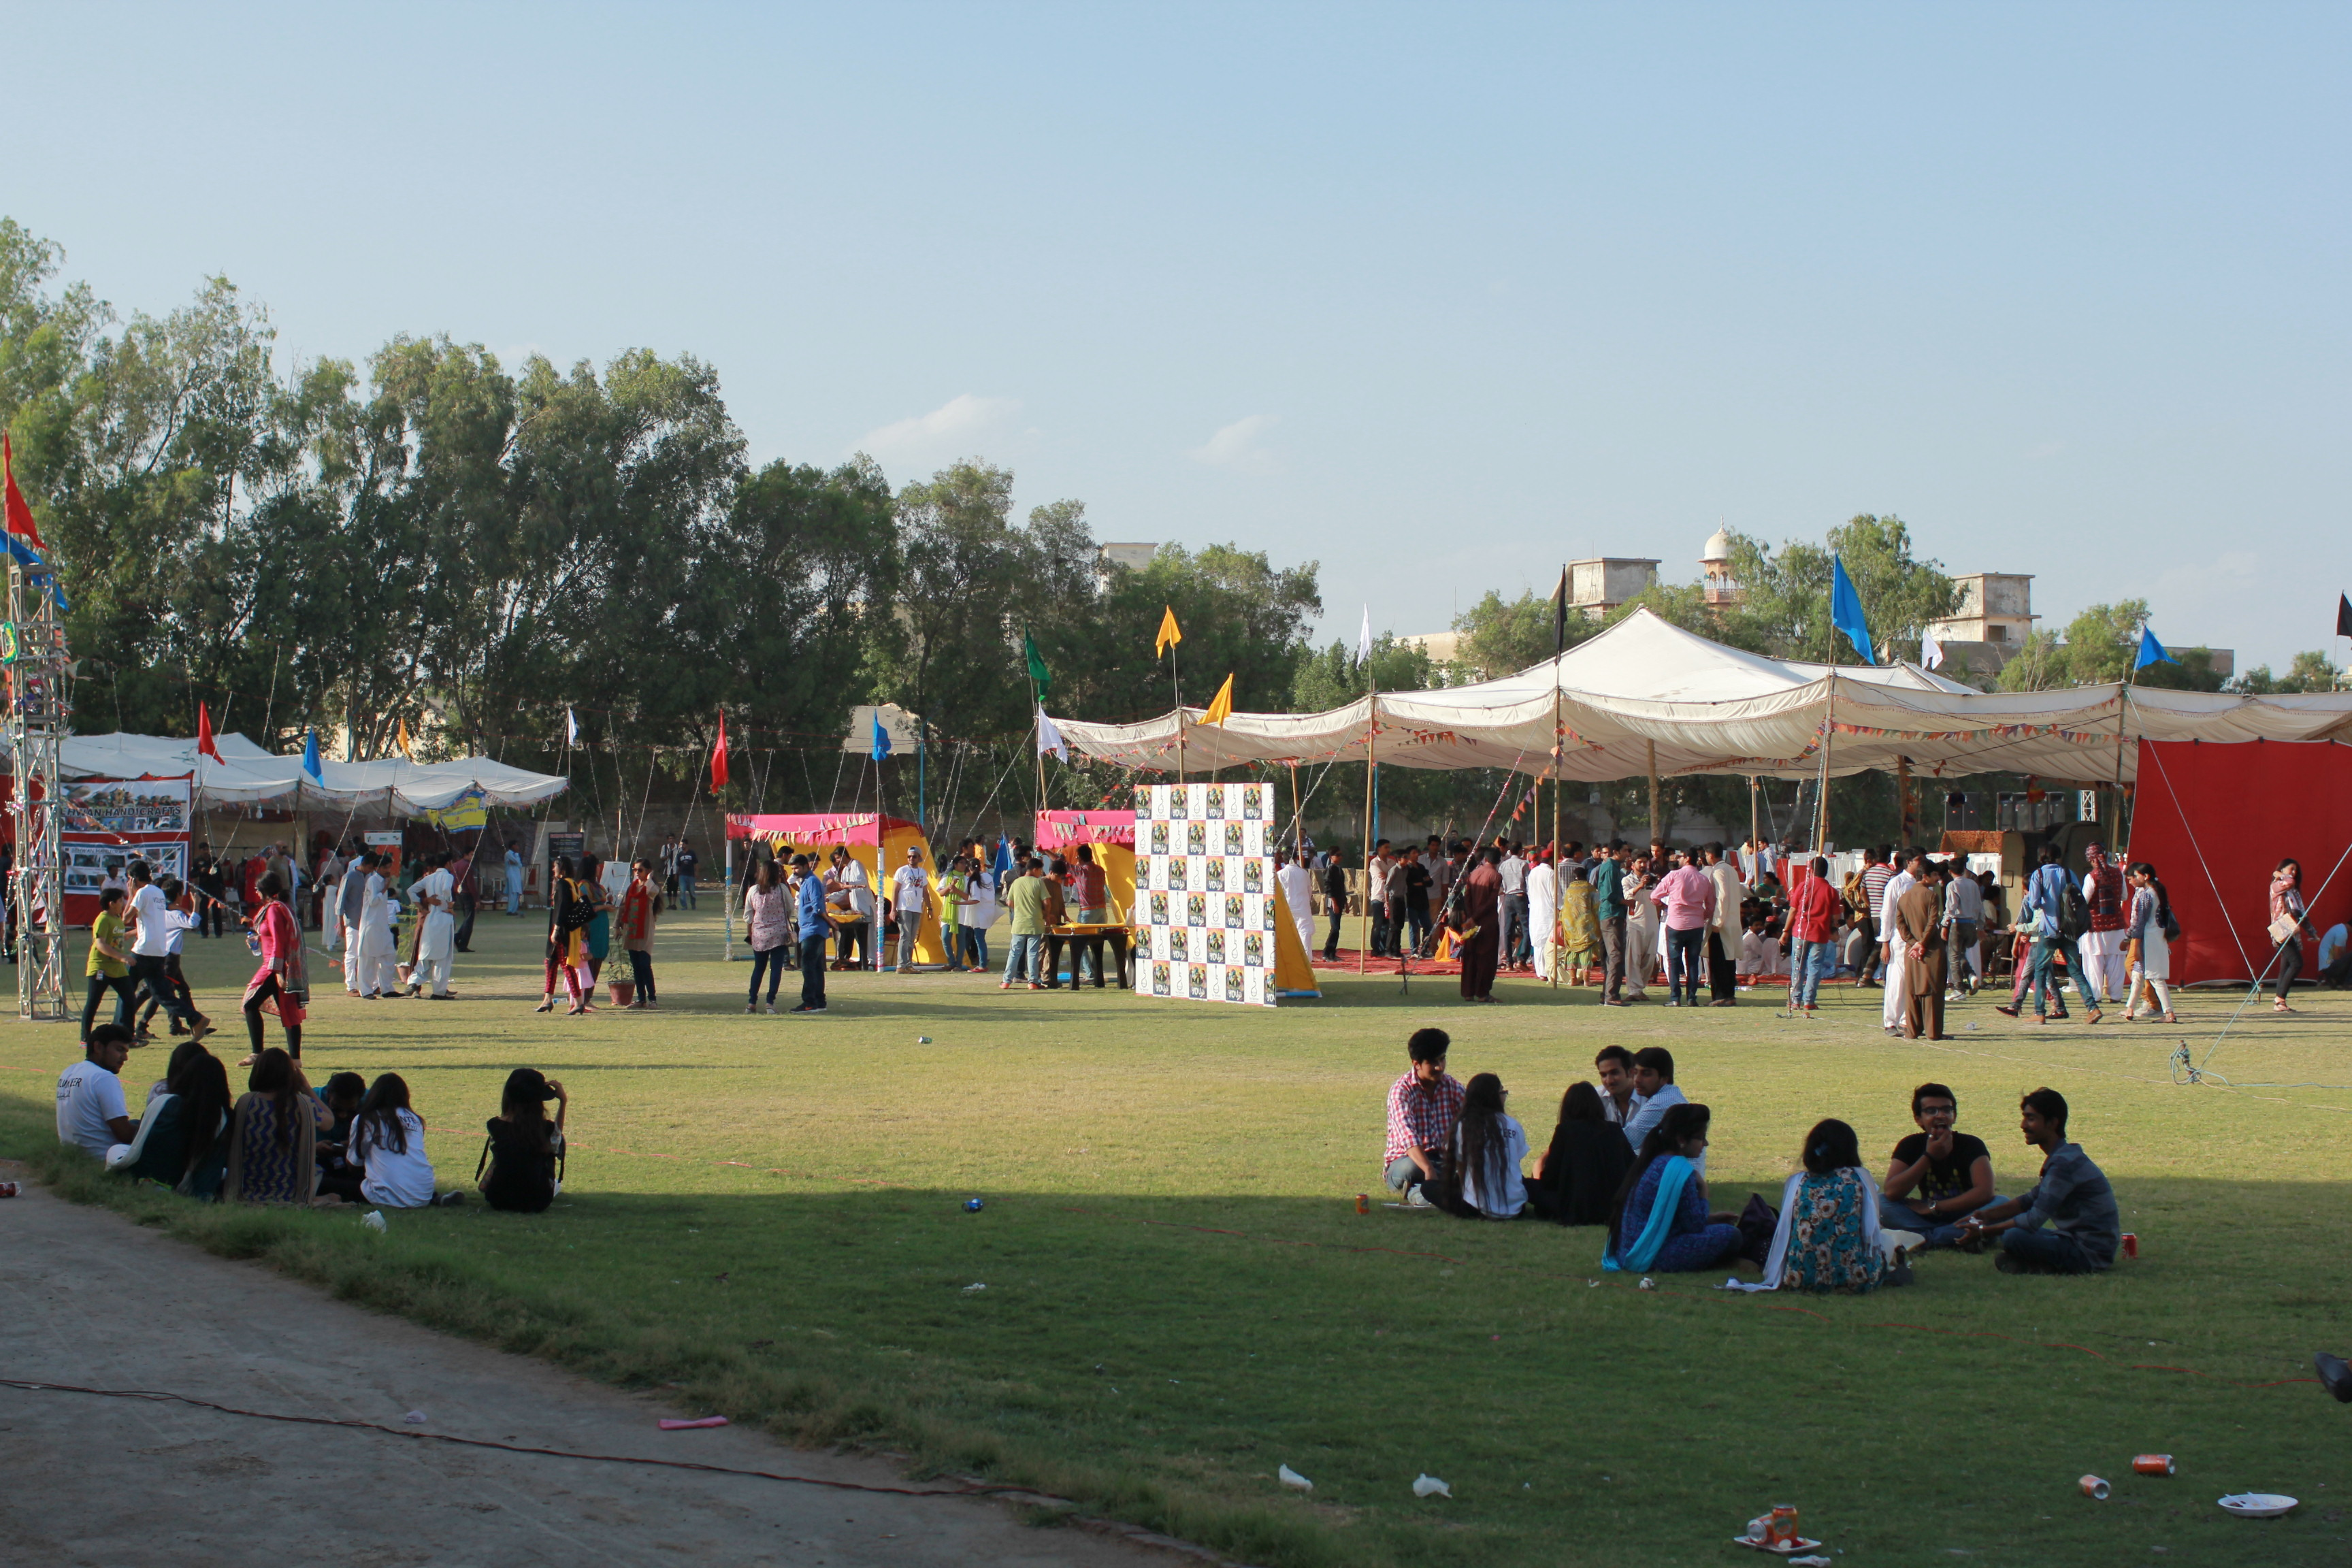 The Lahooti Mela took place after a long hiatus